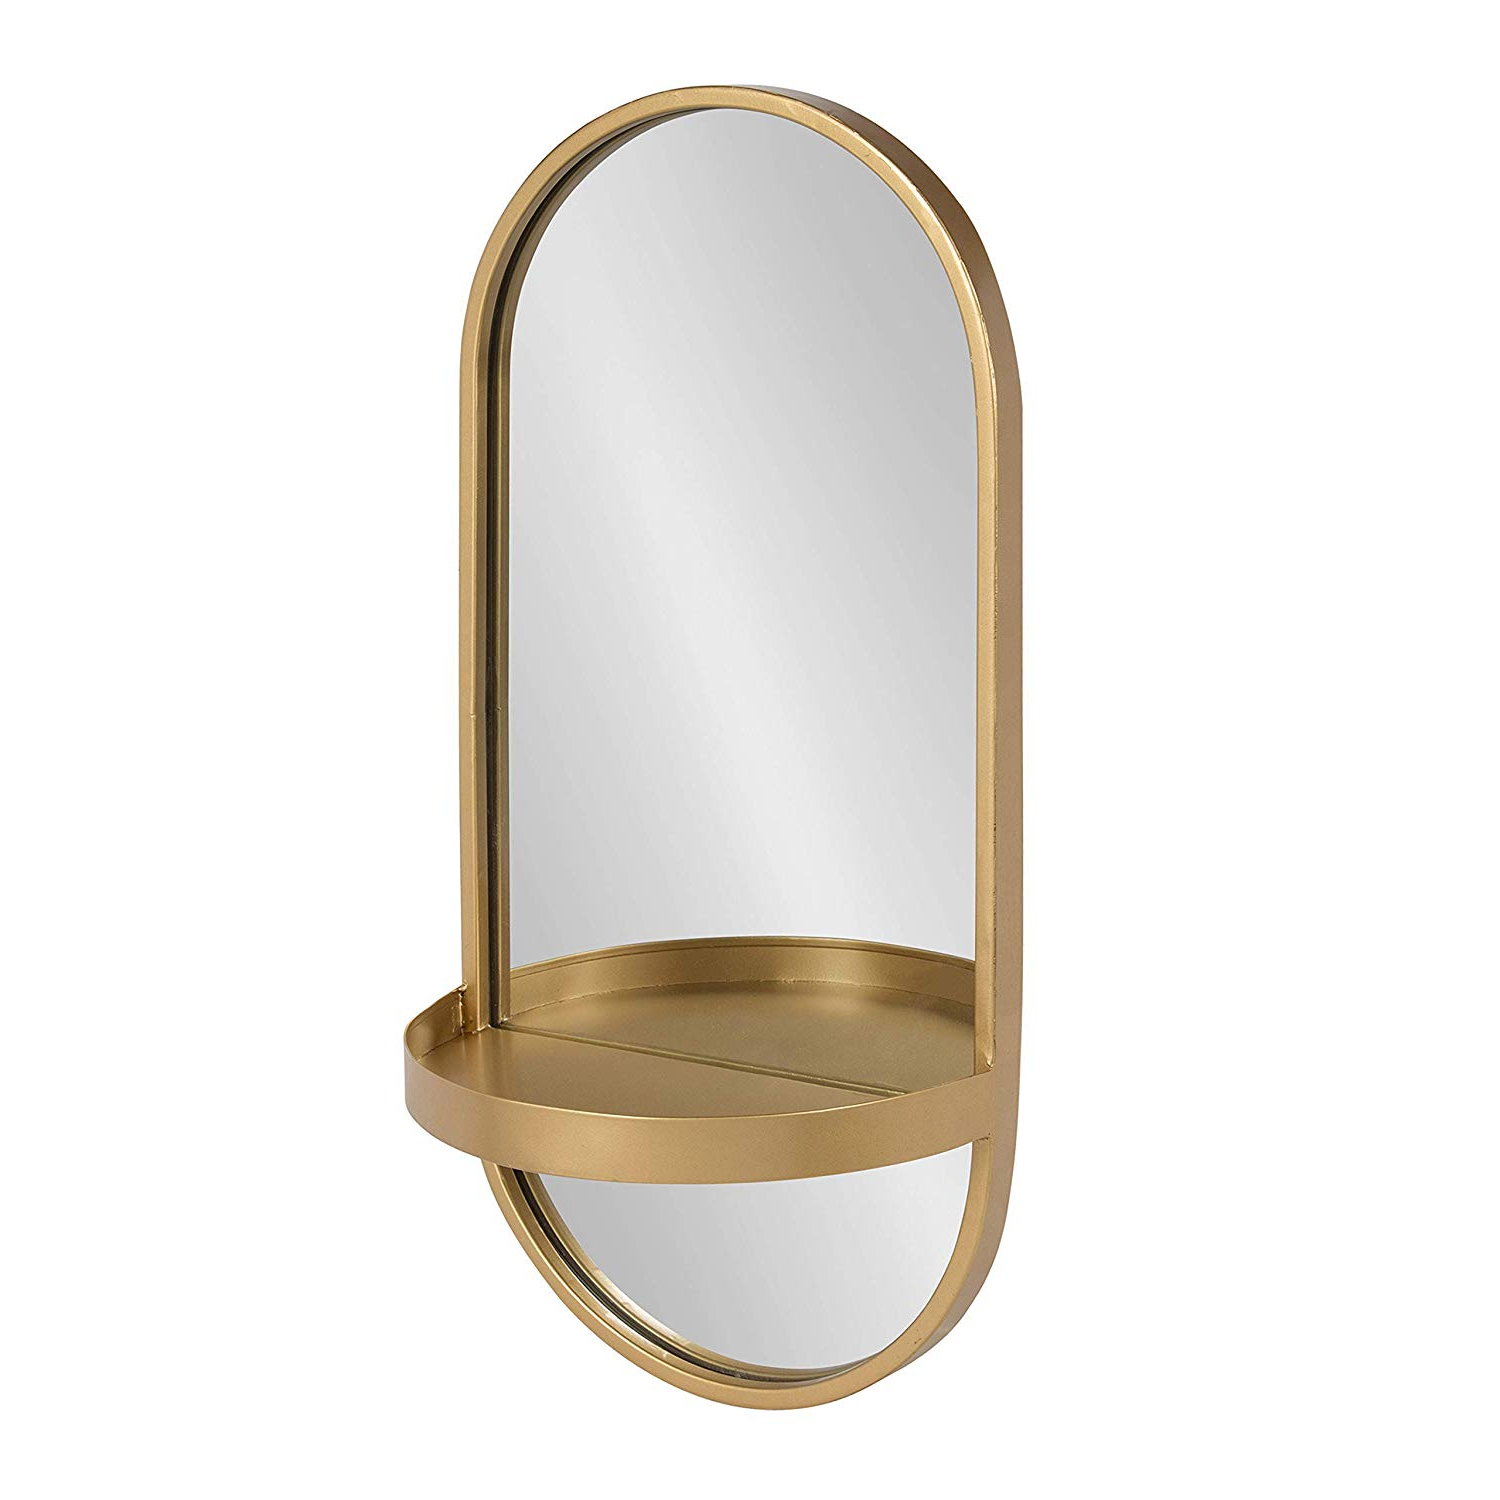 Well Liked Kate And Laurel Estero Modern Metal Wall Mirror With Shelf, Gold In Wall Mirrors With Shelf (View 8 of 20)